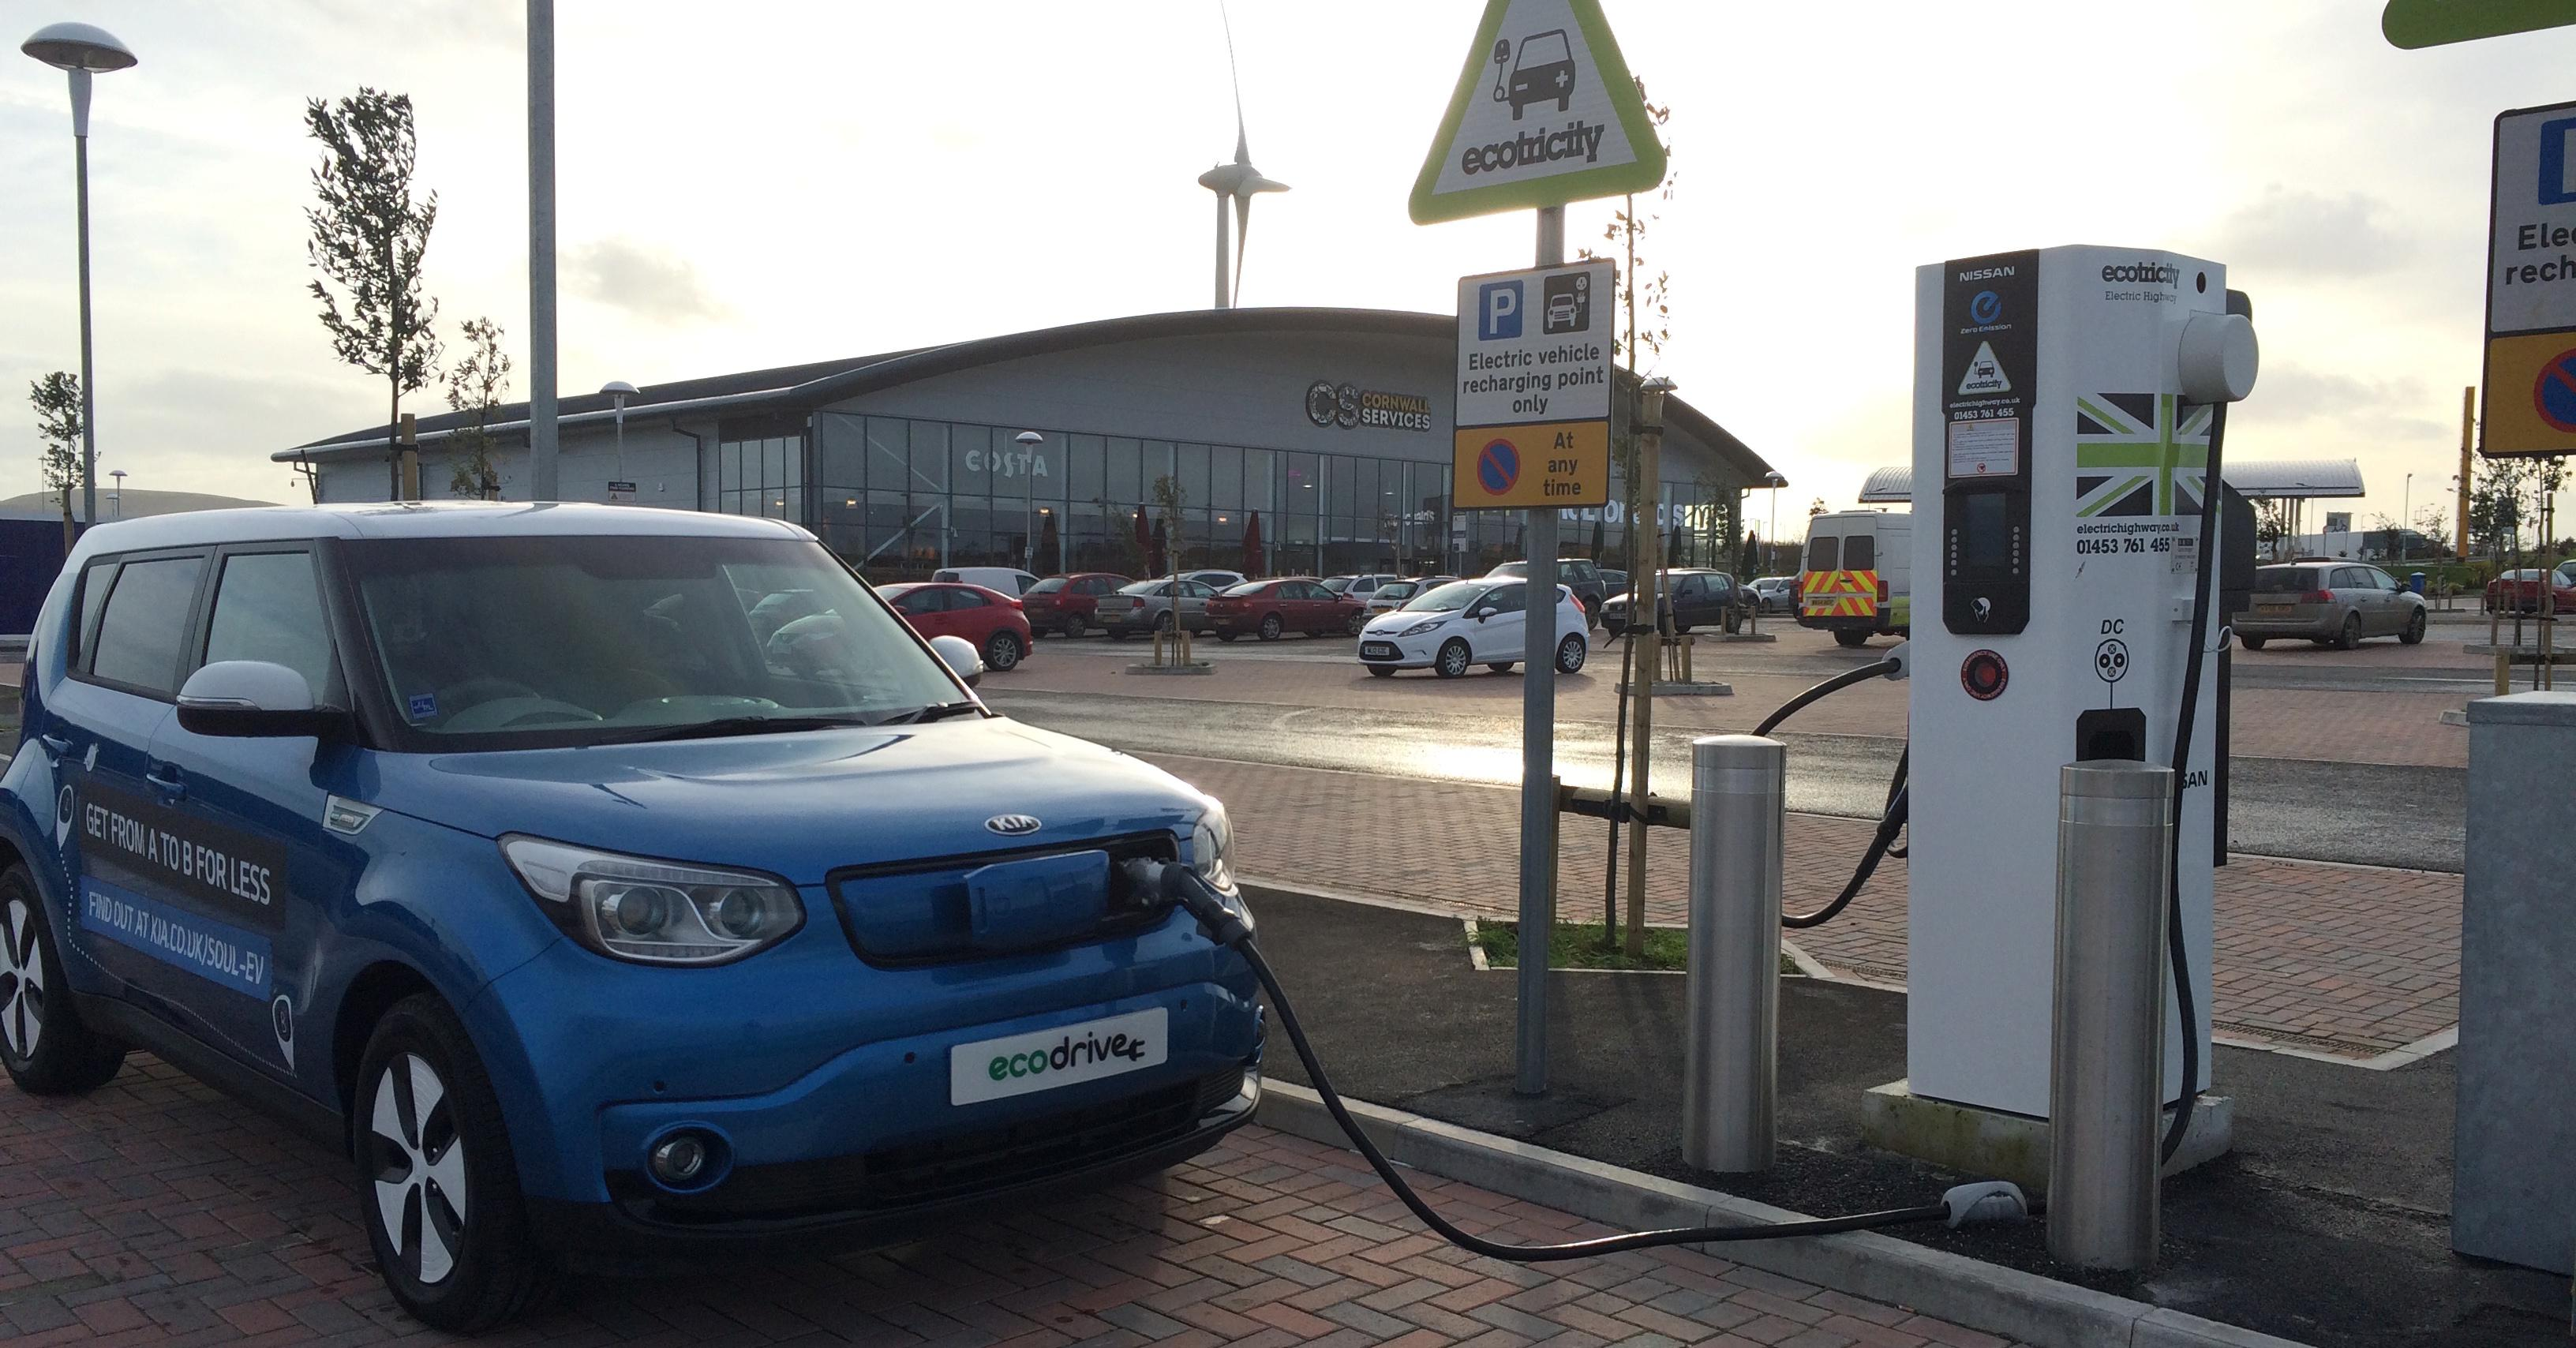 The Quick Charger for Electric Vehicles at Victoria Services